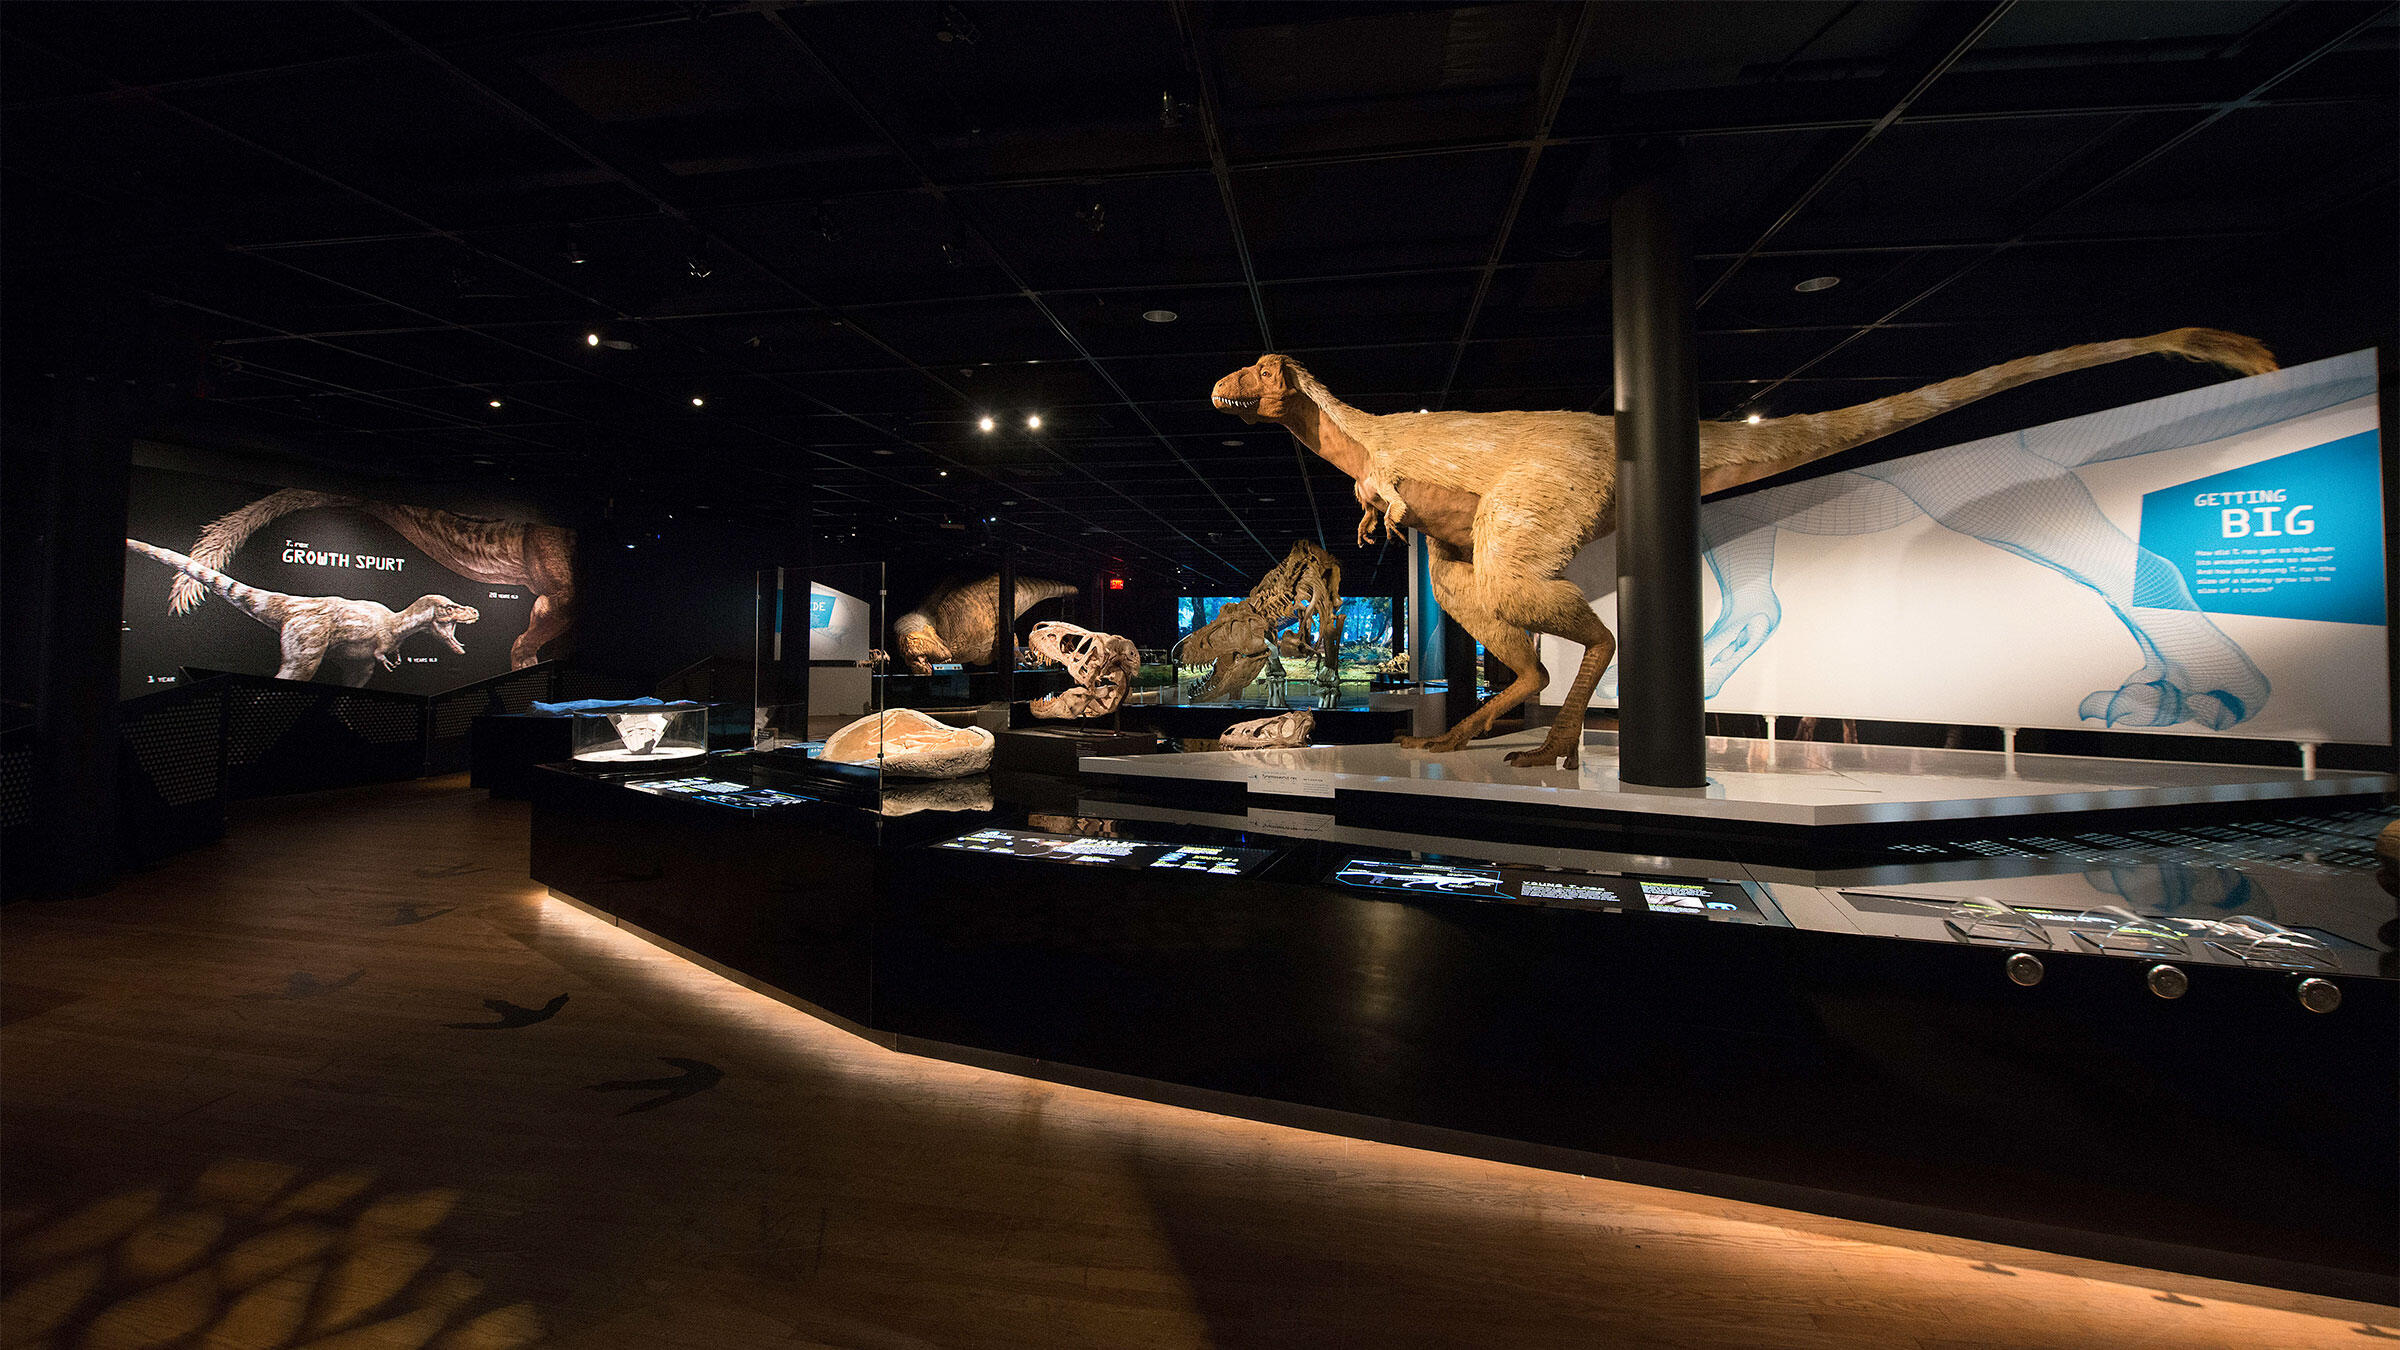 T. rex: The Ultimate Predator, on view at the American Museum of Natural History, explores the entire tyrannosaur superfamily and reveals the most scientifically accurate representation of T. rex to date—feathers and all. AMNH/D. Finnin